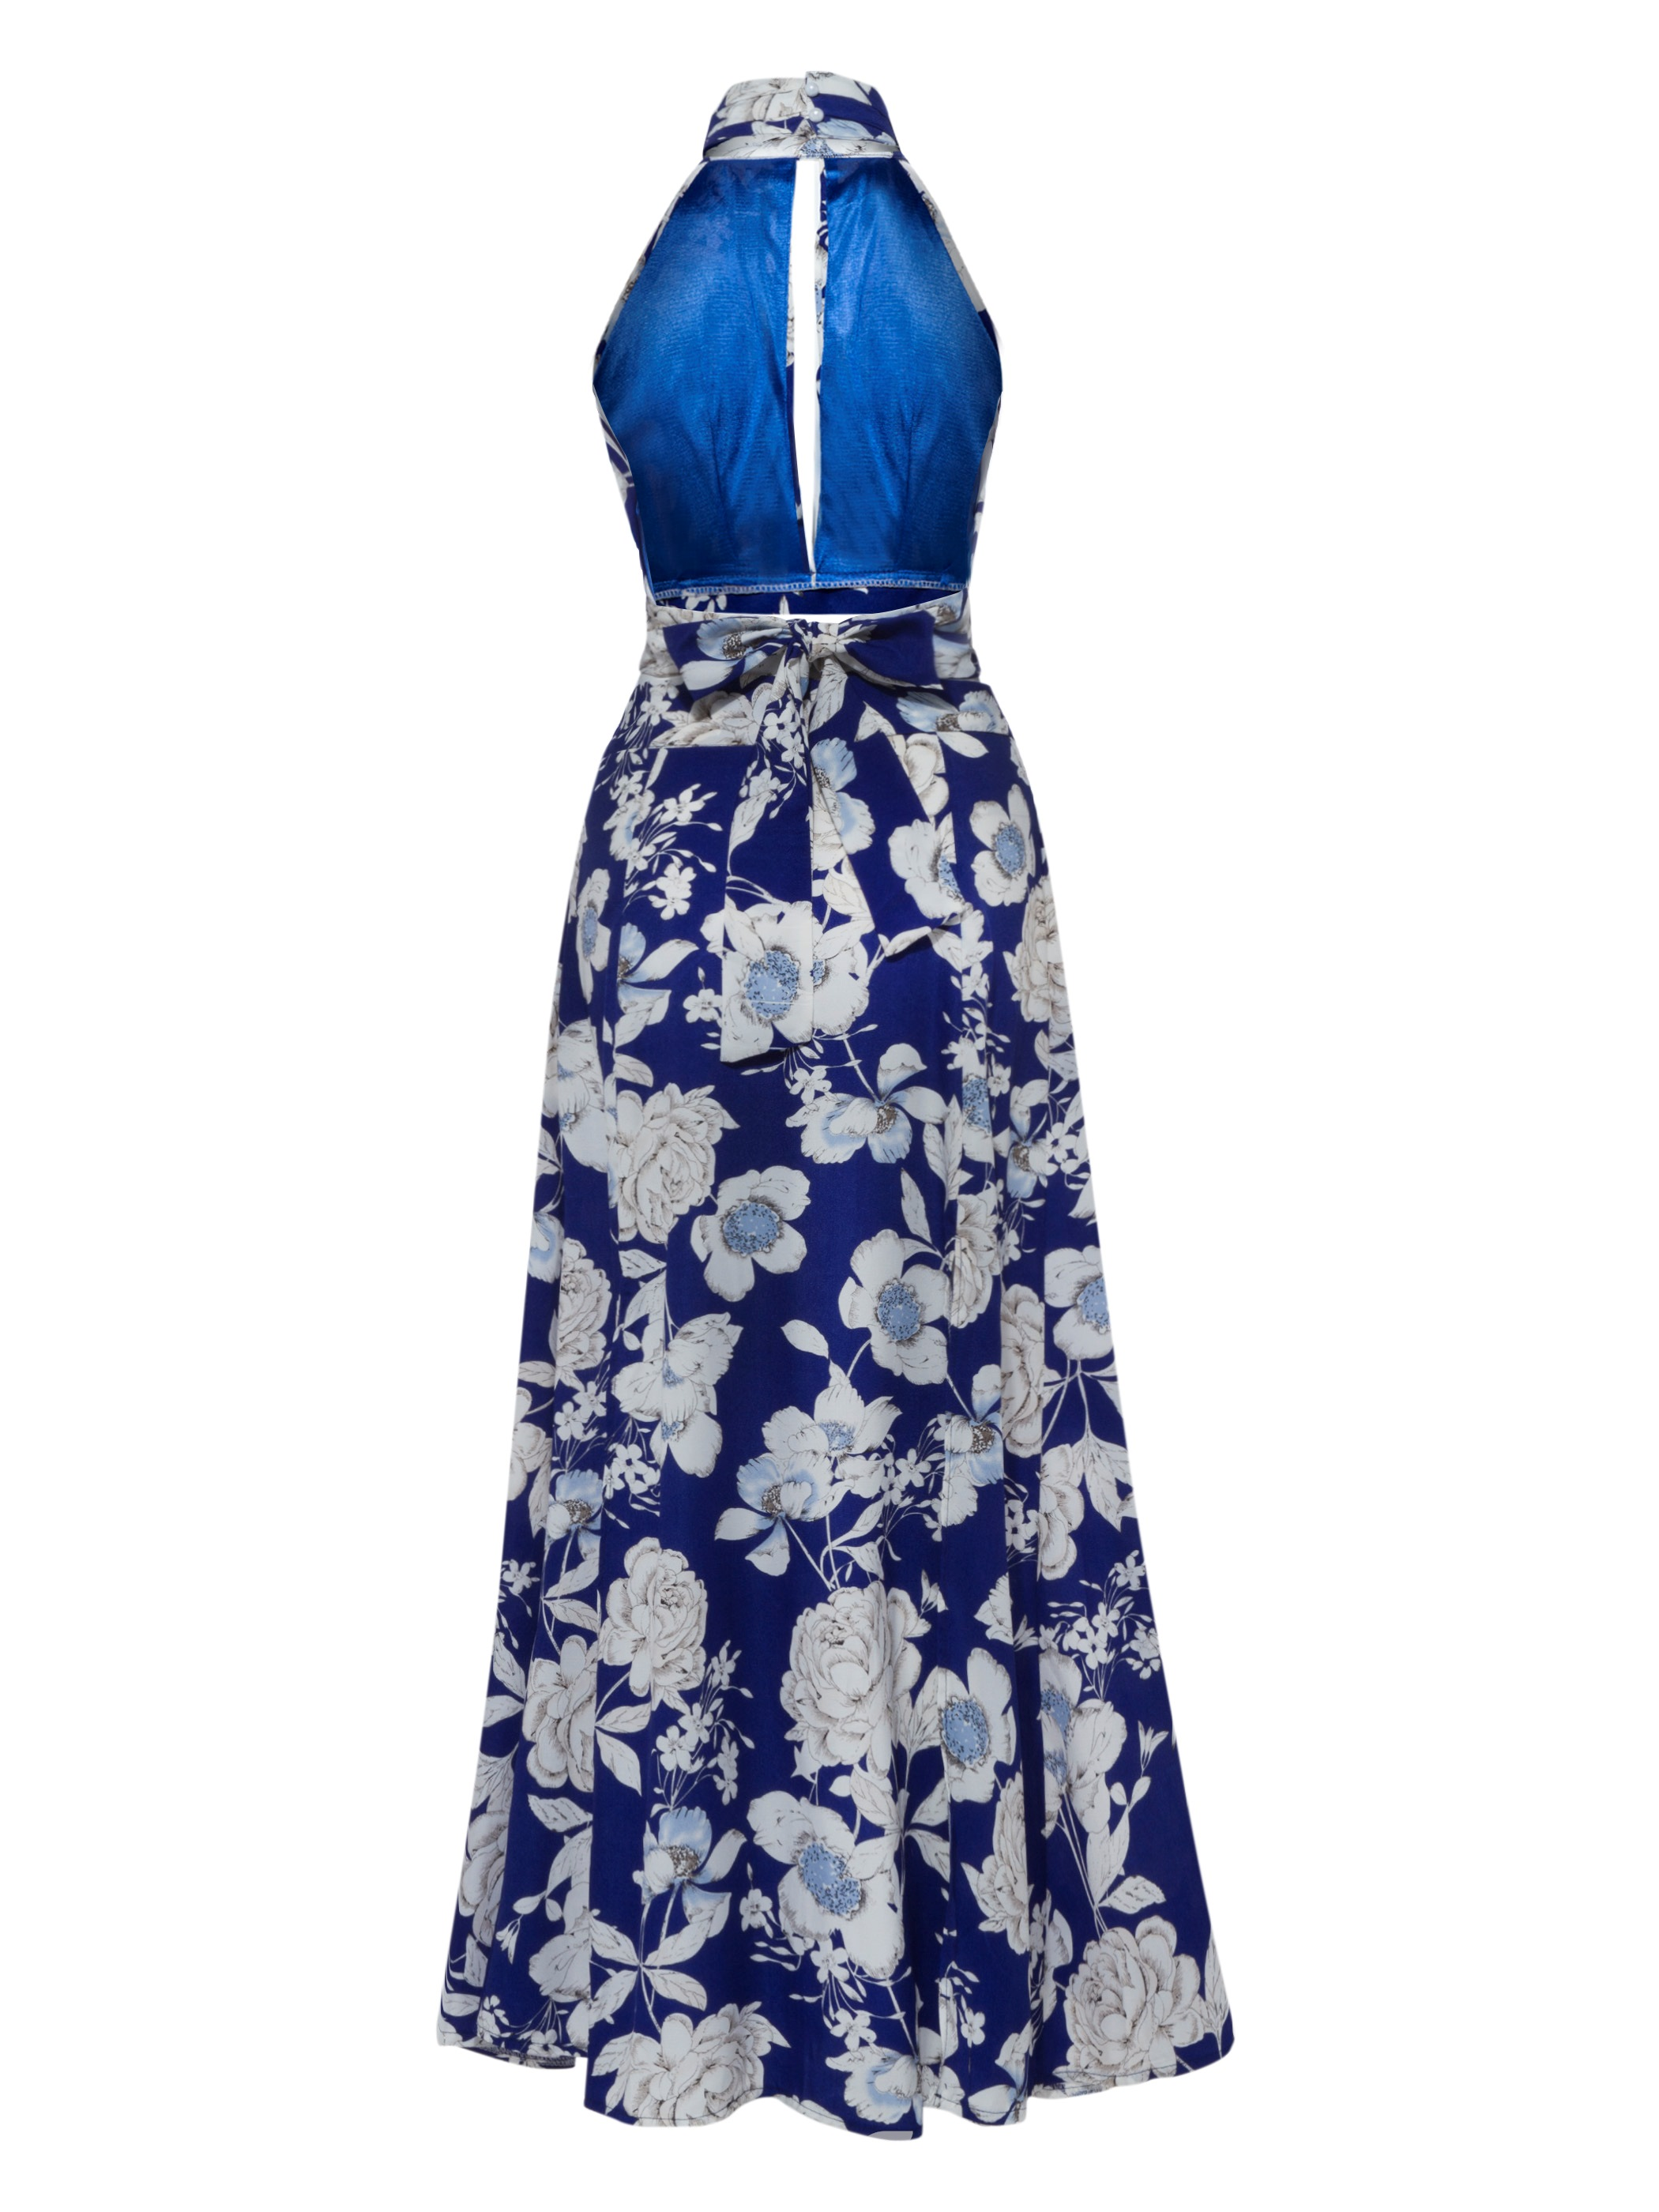 Floral Print Ankle-Length Women's Skirt Suit